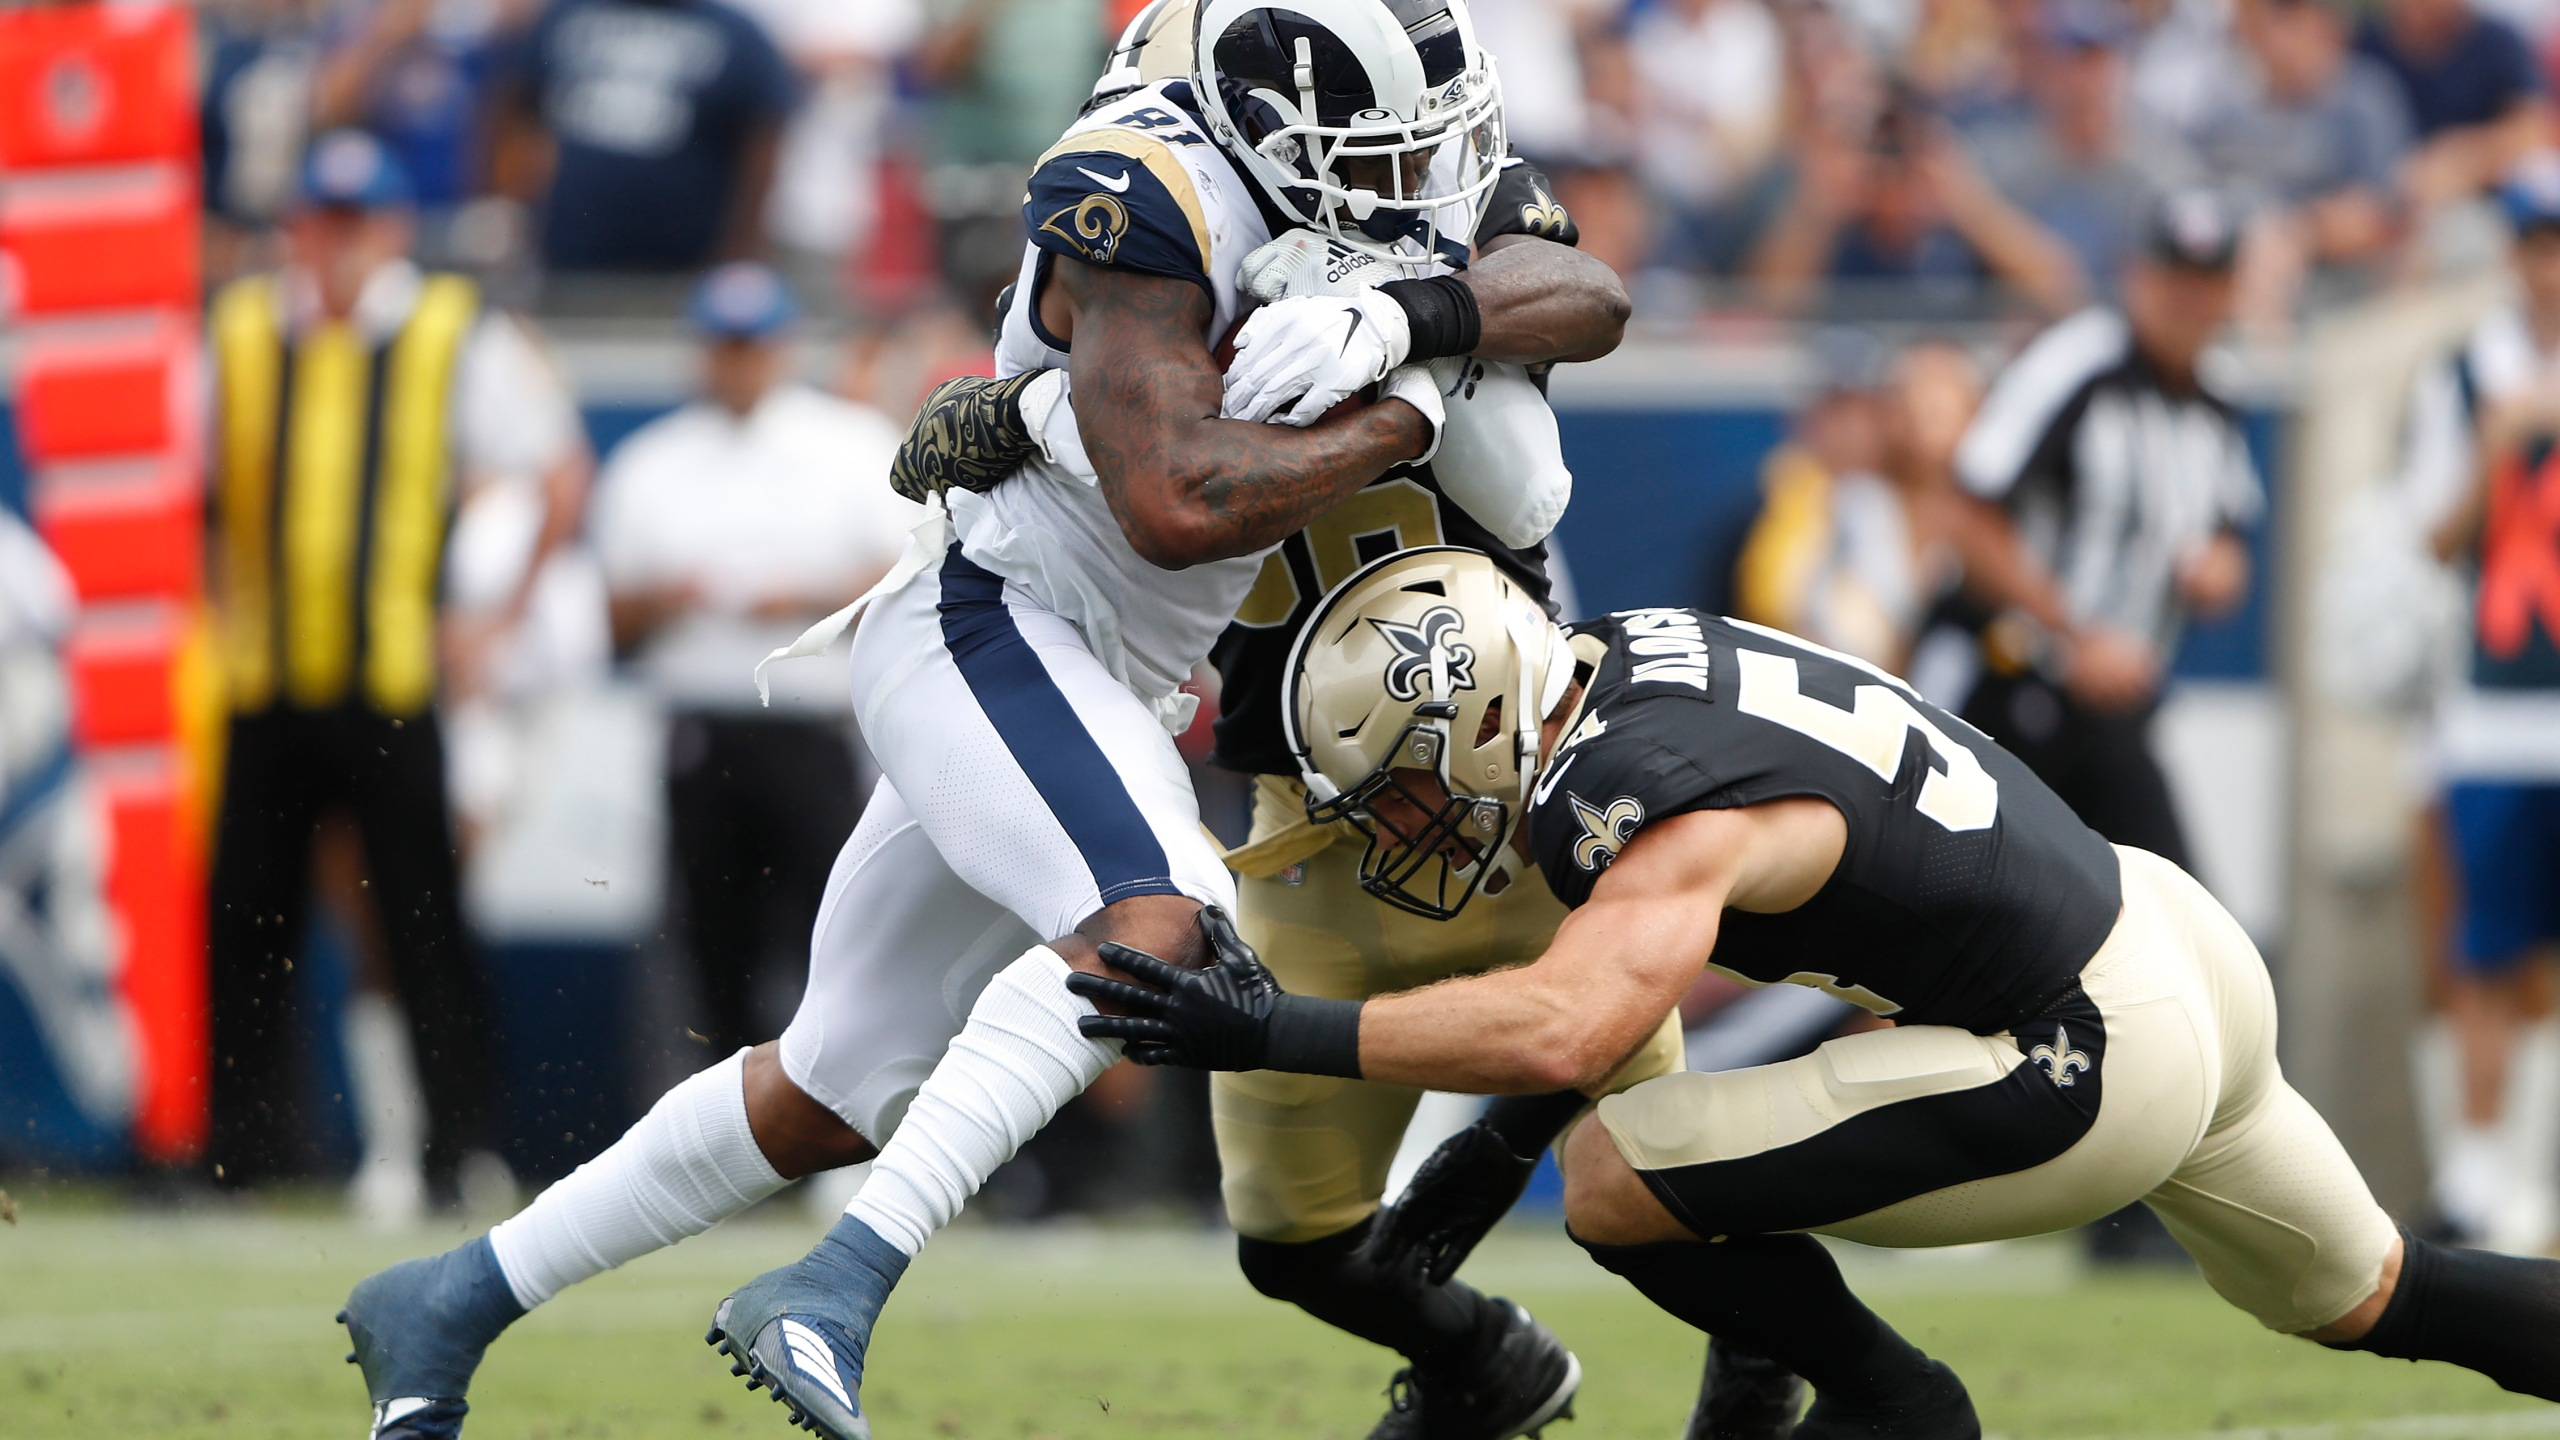 Gerald Everett #81 of the Los Angeles Rams is tackled by Kiko Alonso #54 and Demario Davis #56 of the New Orleans Saints during the second half in the game at Los Angeles Memorial Coliseum on Sep. 15, 2019 in Los Angeles, California. (Credit: Sean M. Haffey/Getty Images)